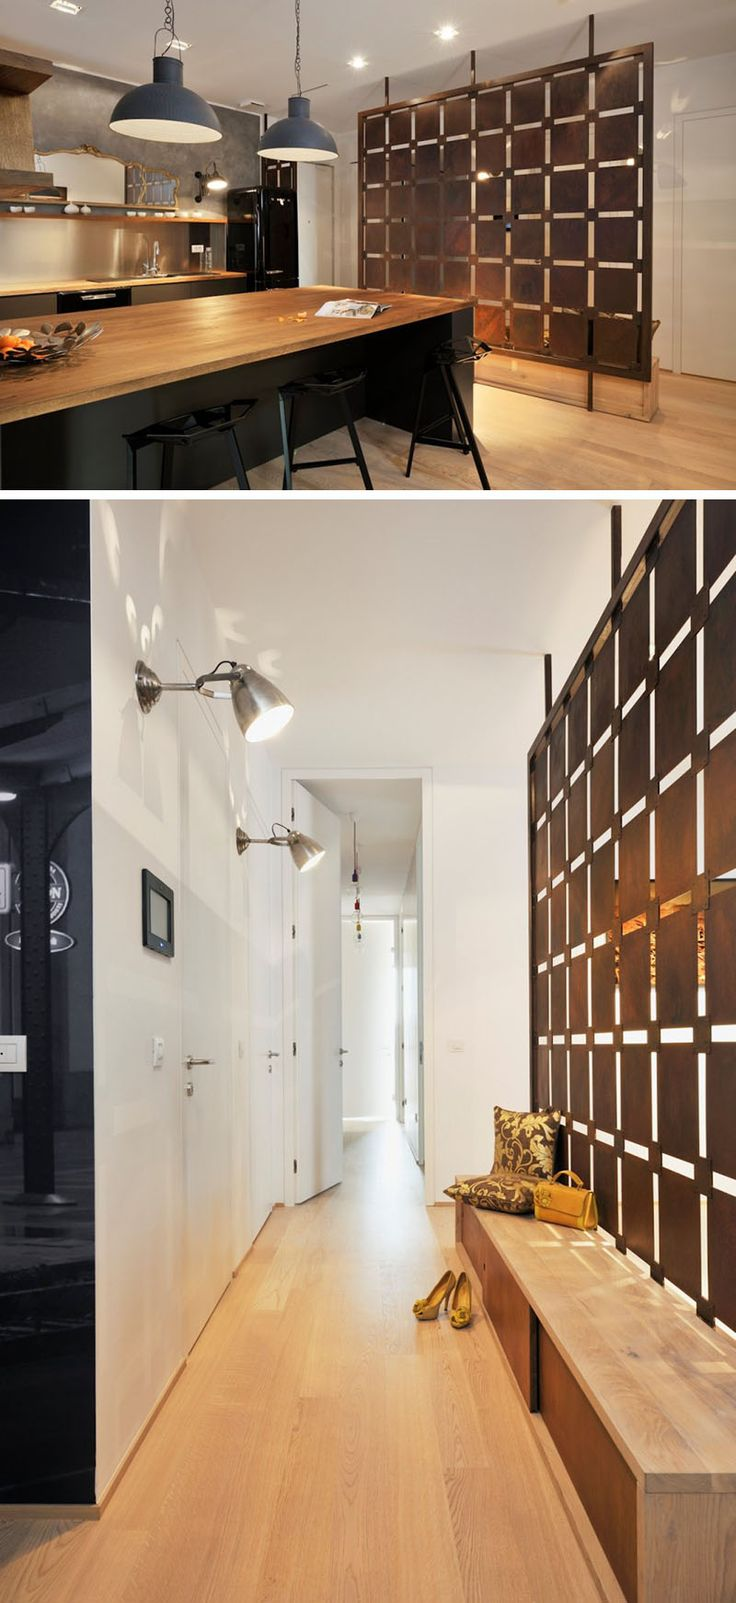 15 Creative Ideas For Room Dividers // Artistic geometric wall panels divide the entry way and kitchen in this Slovenian apartment.